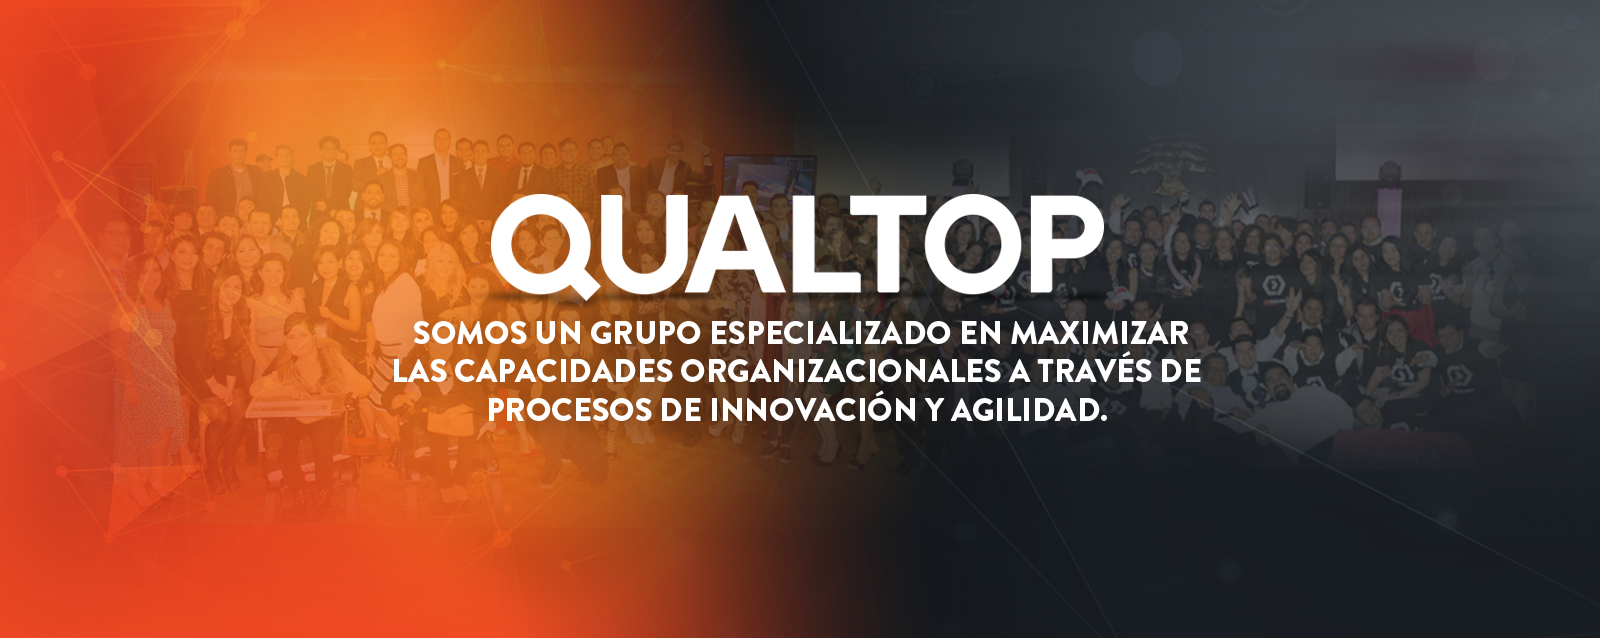 Qualtop Group